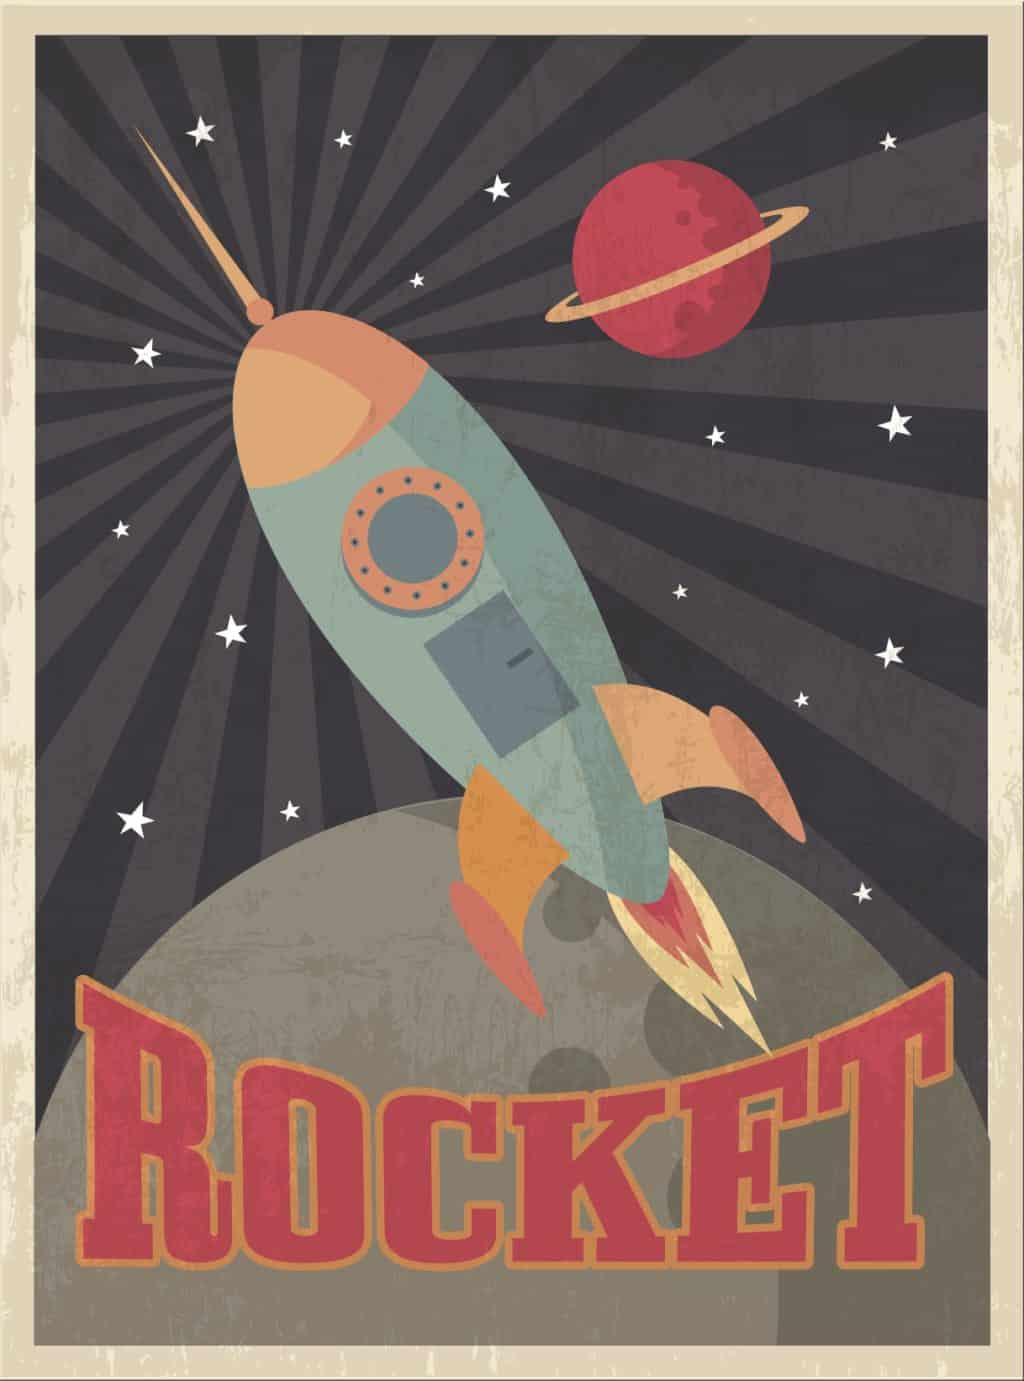 Invite your Friends - Rocket